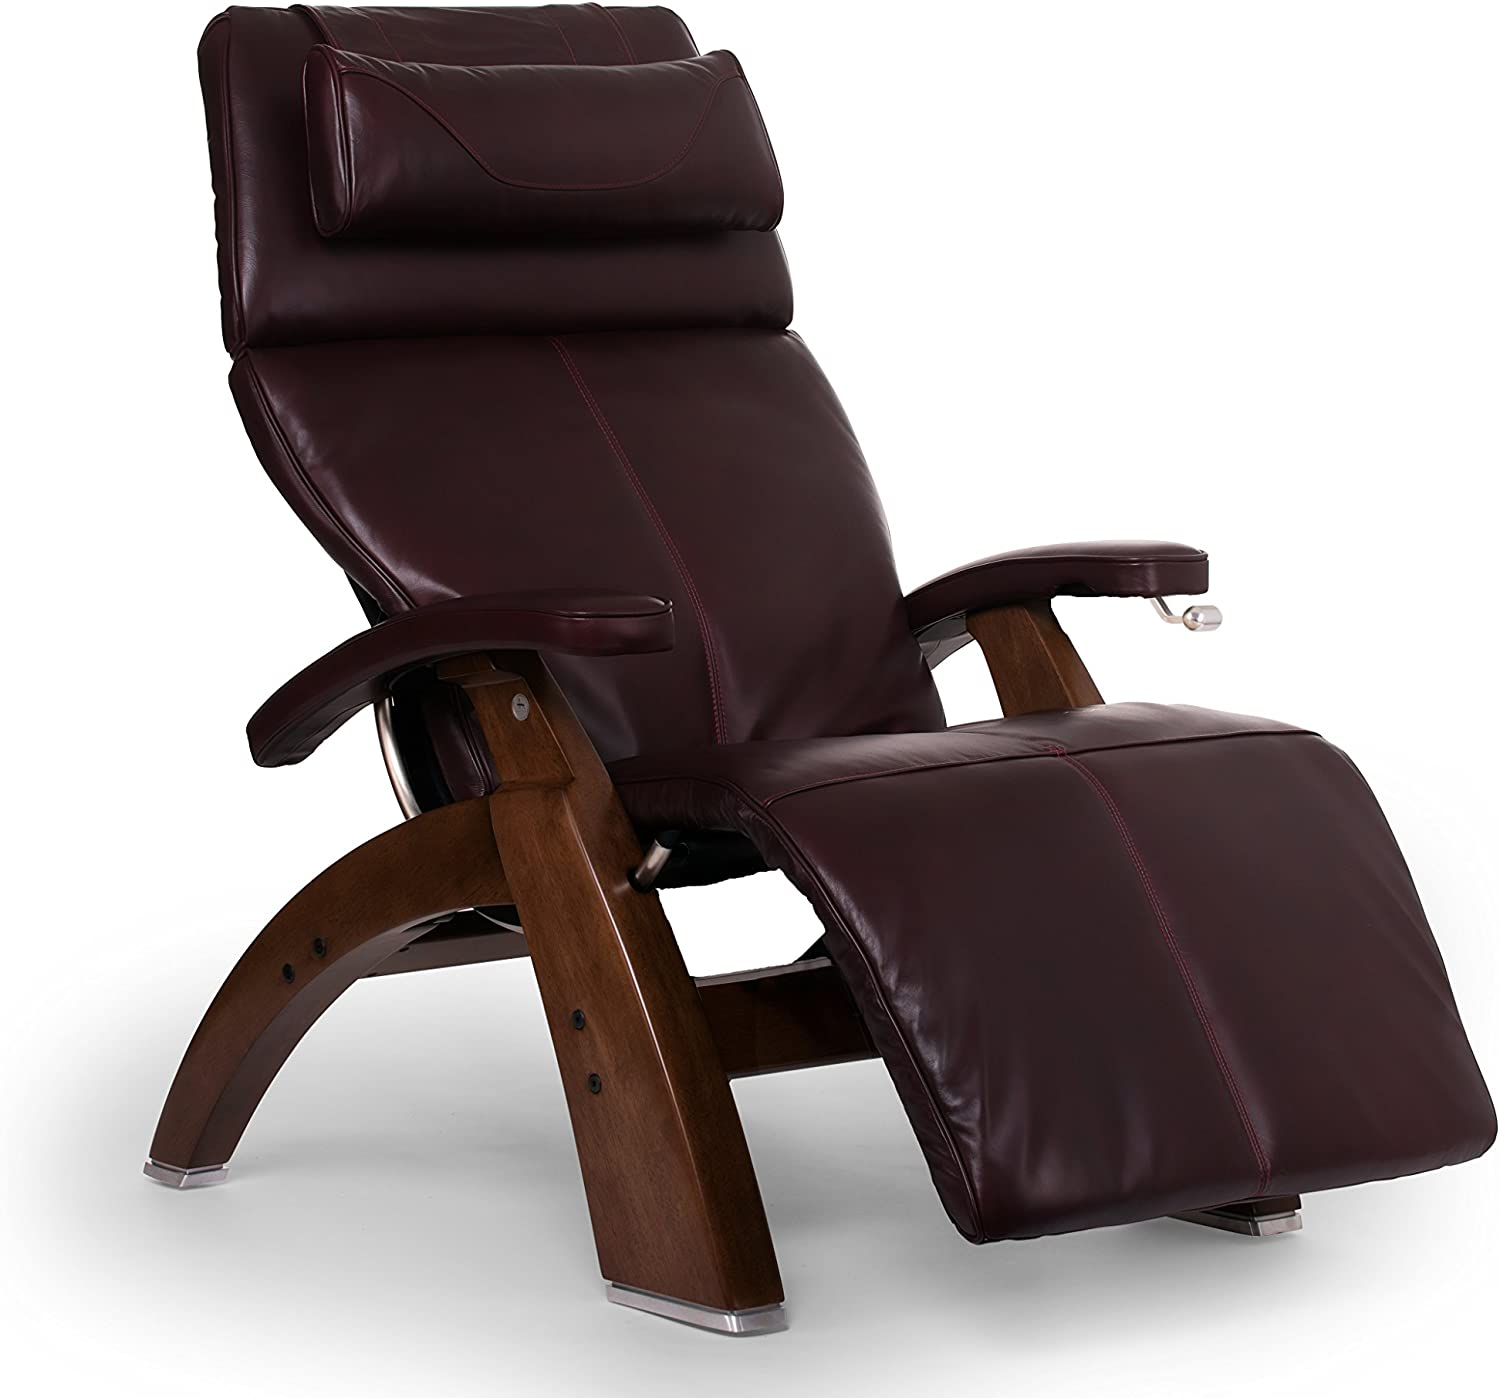 Human Touch Perfect Chair PC-420 Classic Plus Premium Full Grain Leather Zero Gravity Recliner, Burgundy